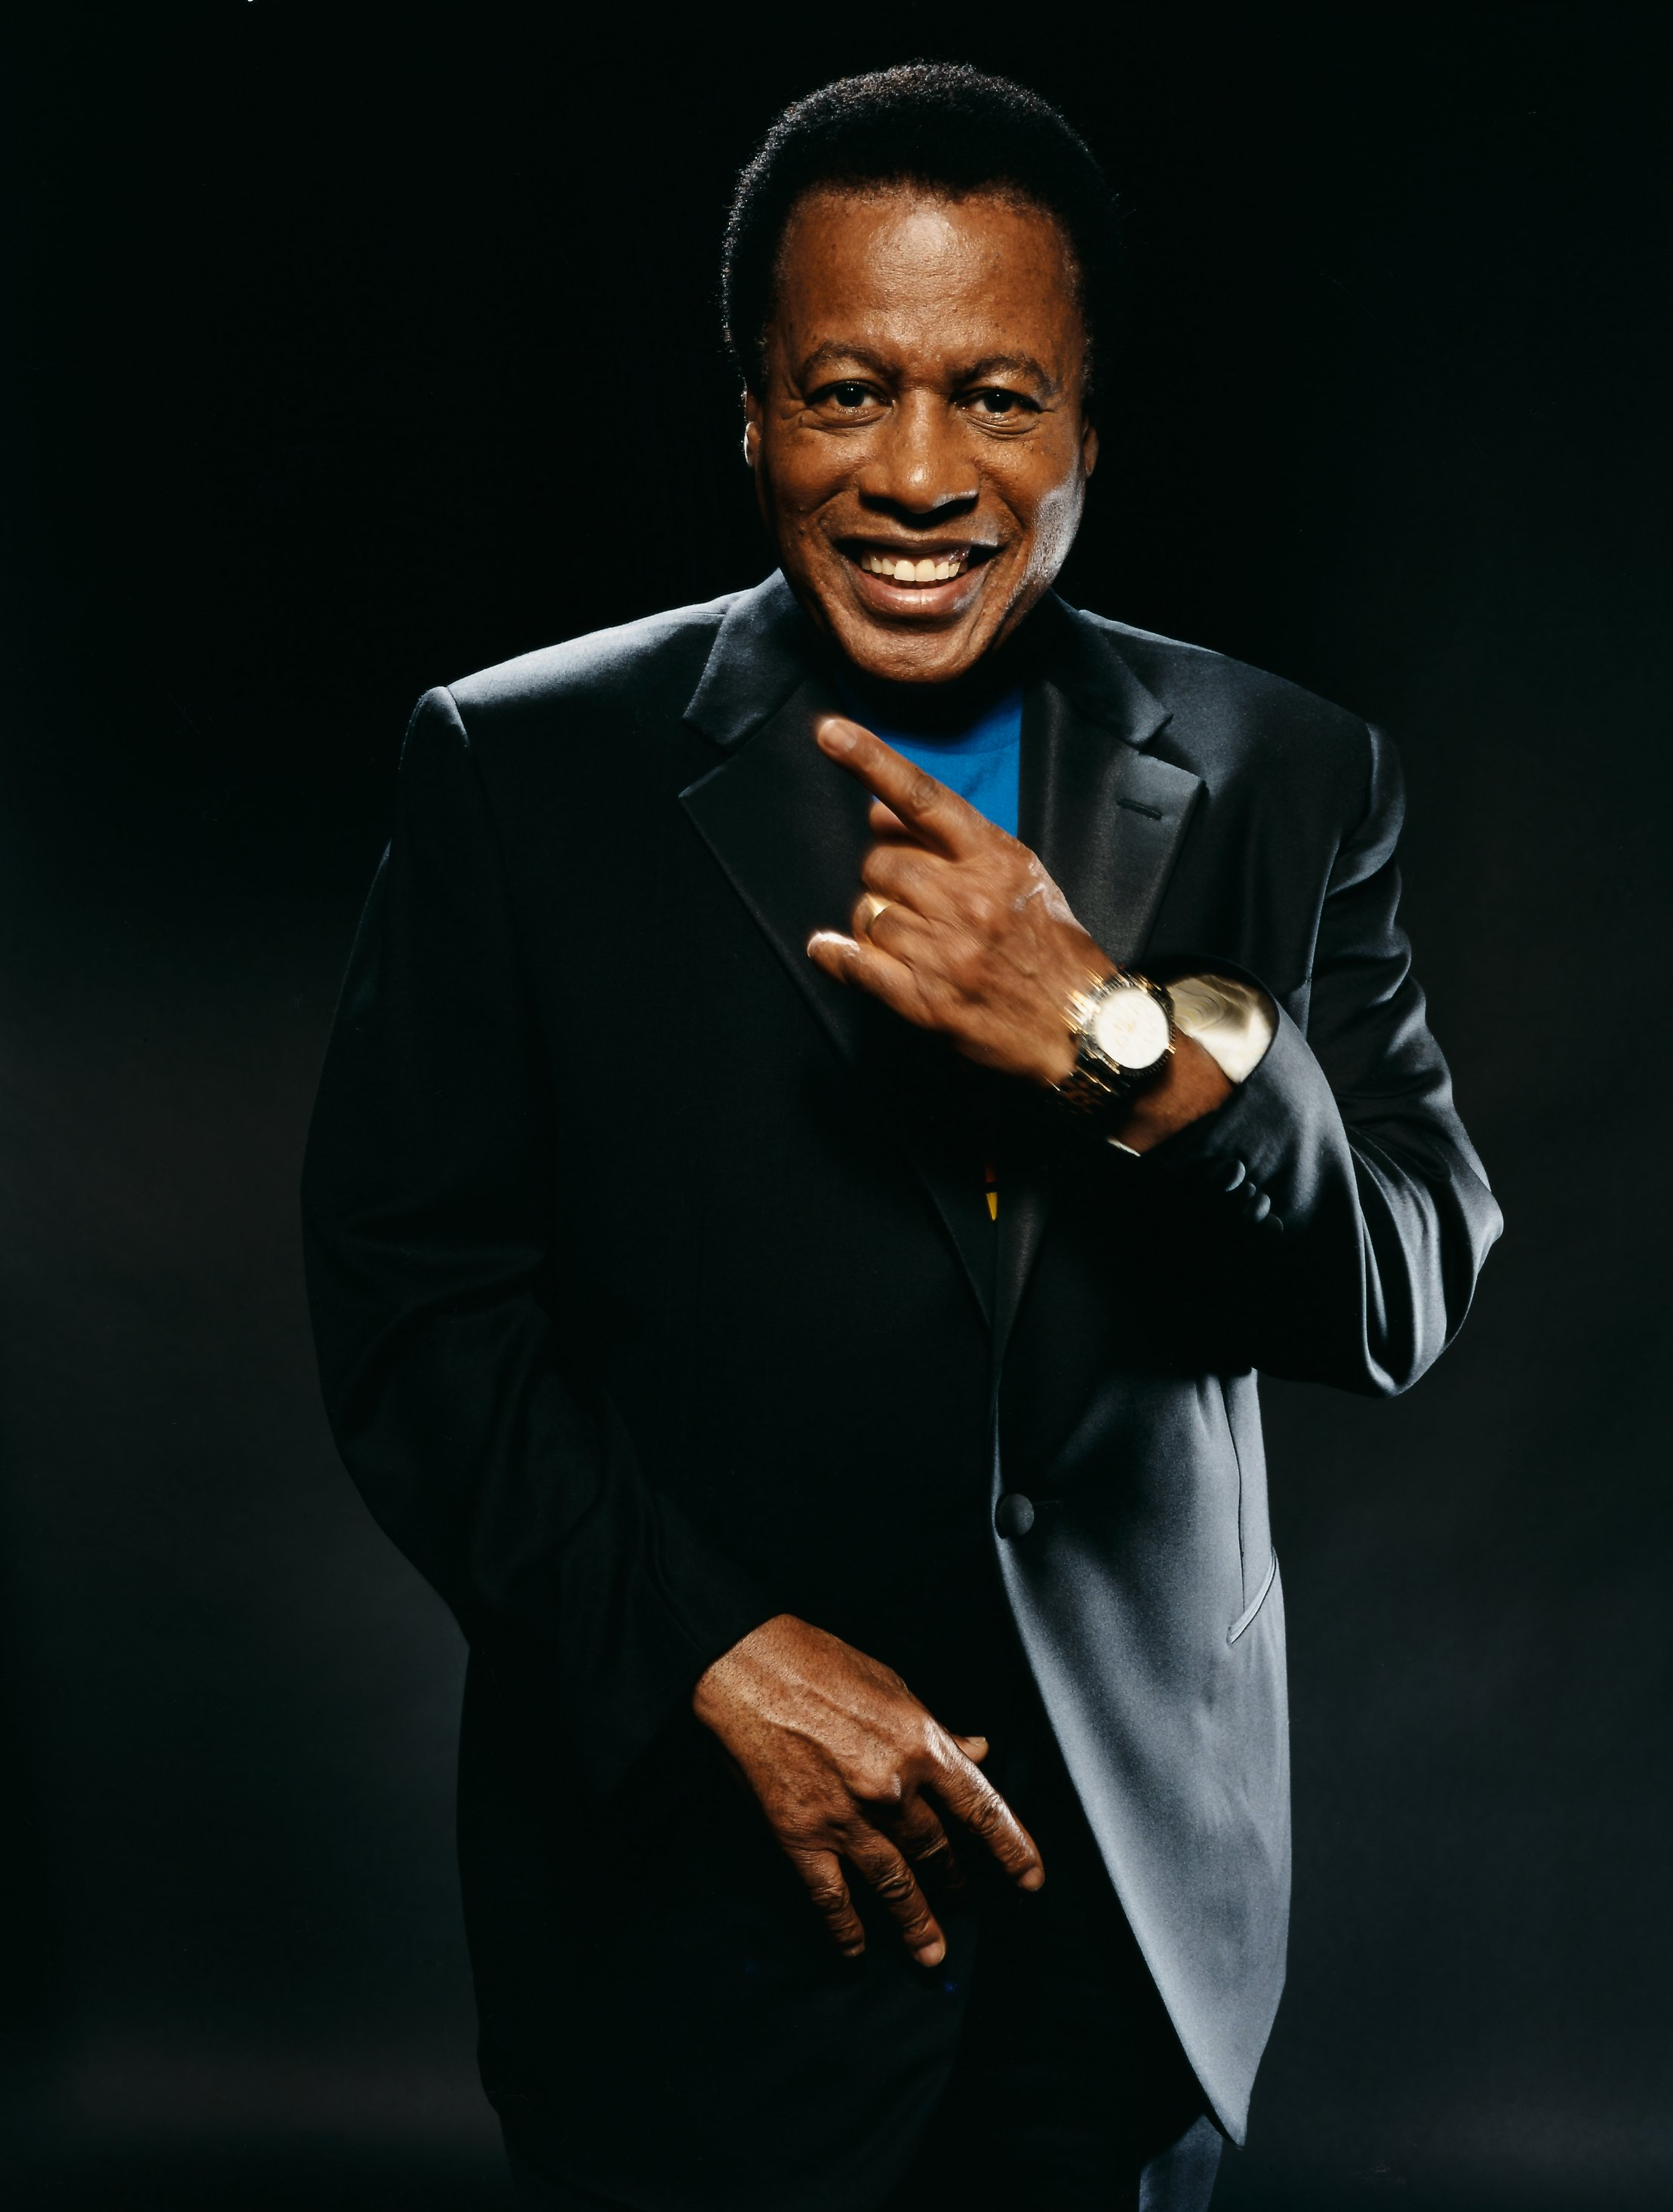 Wayne Shorter 2011 Dates Tour